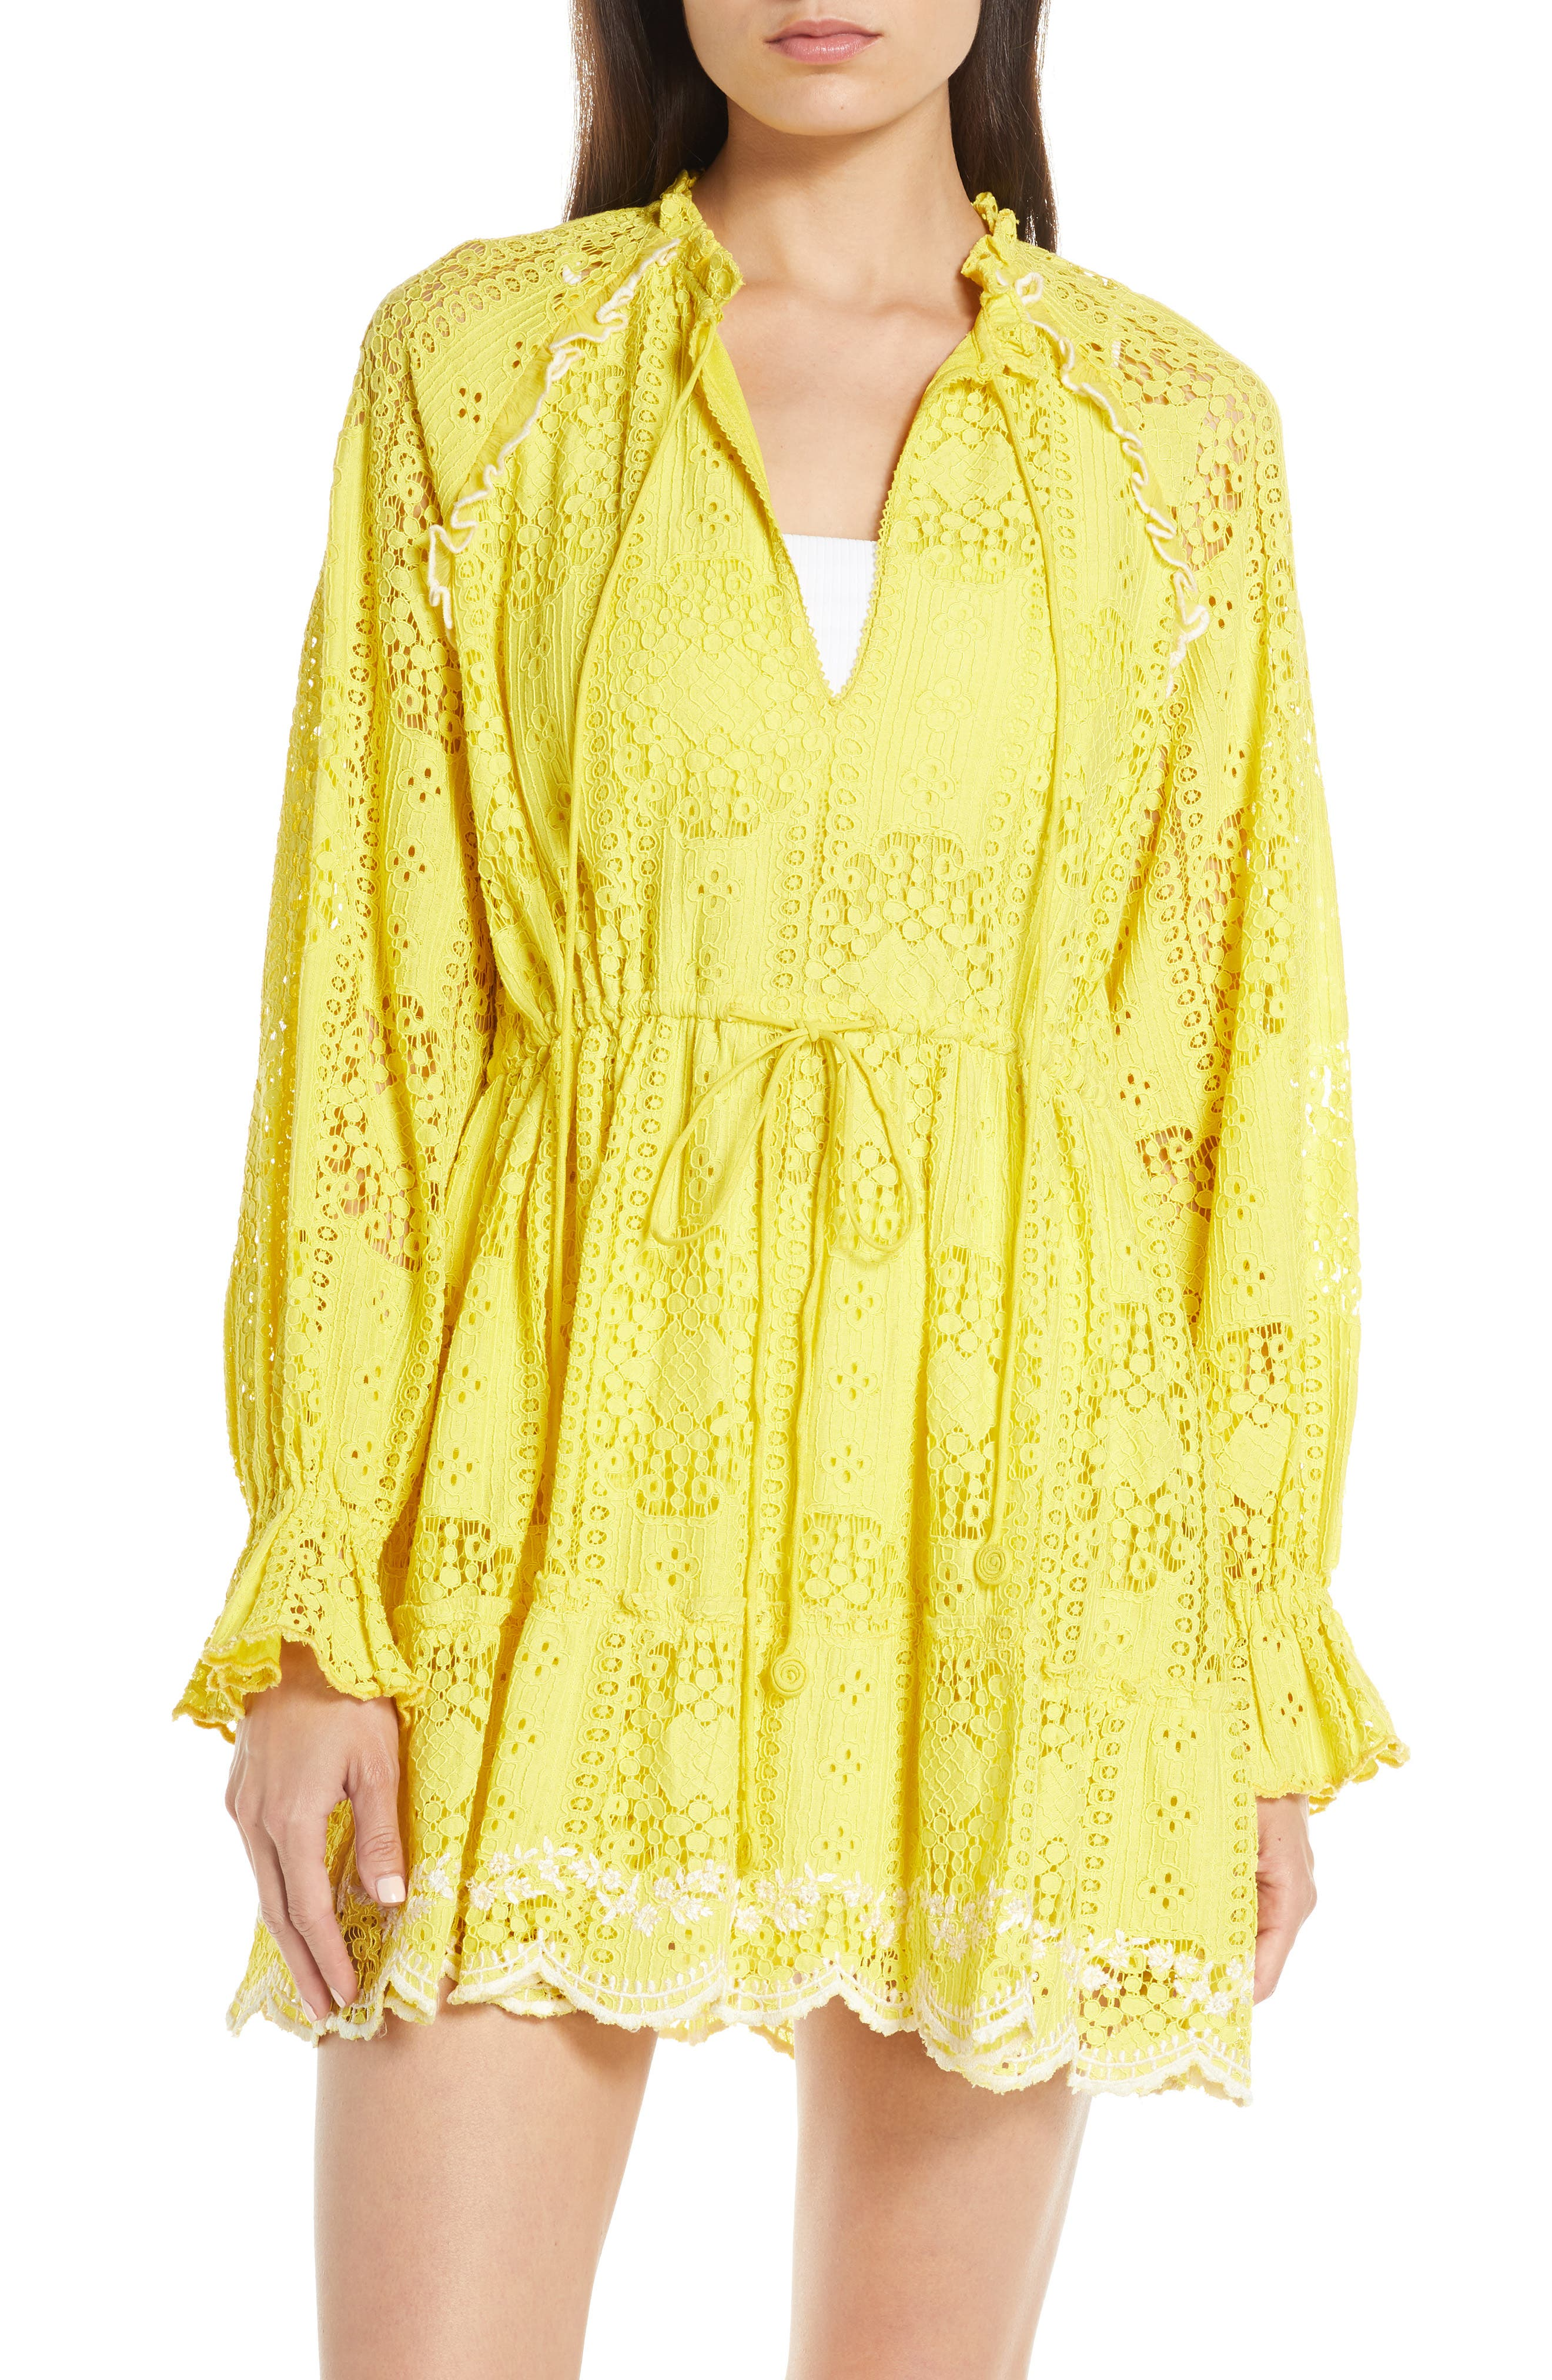 Hemant & Nandita Embroidered Lace Cover-Up Dress, Yellow